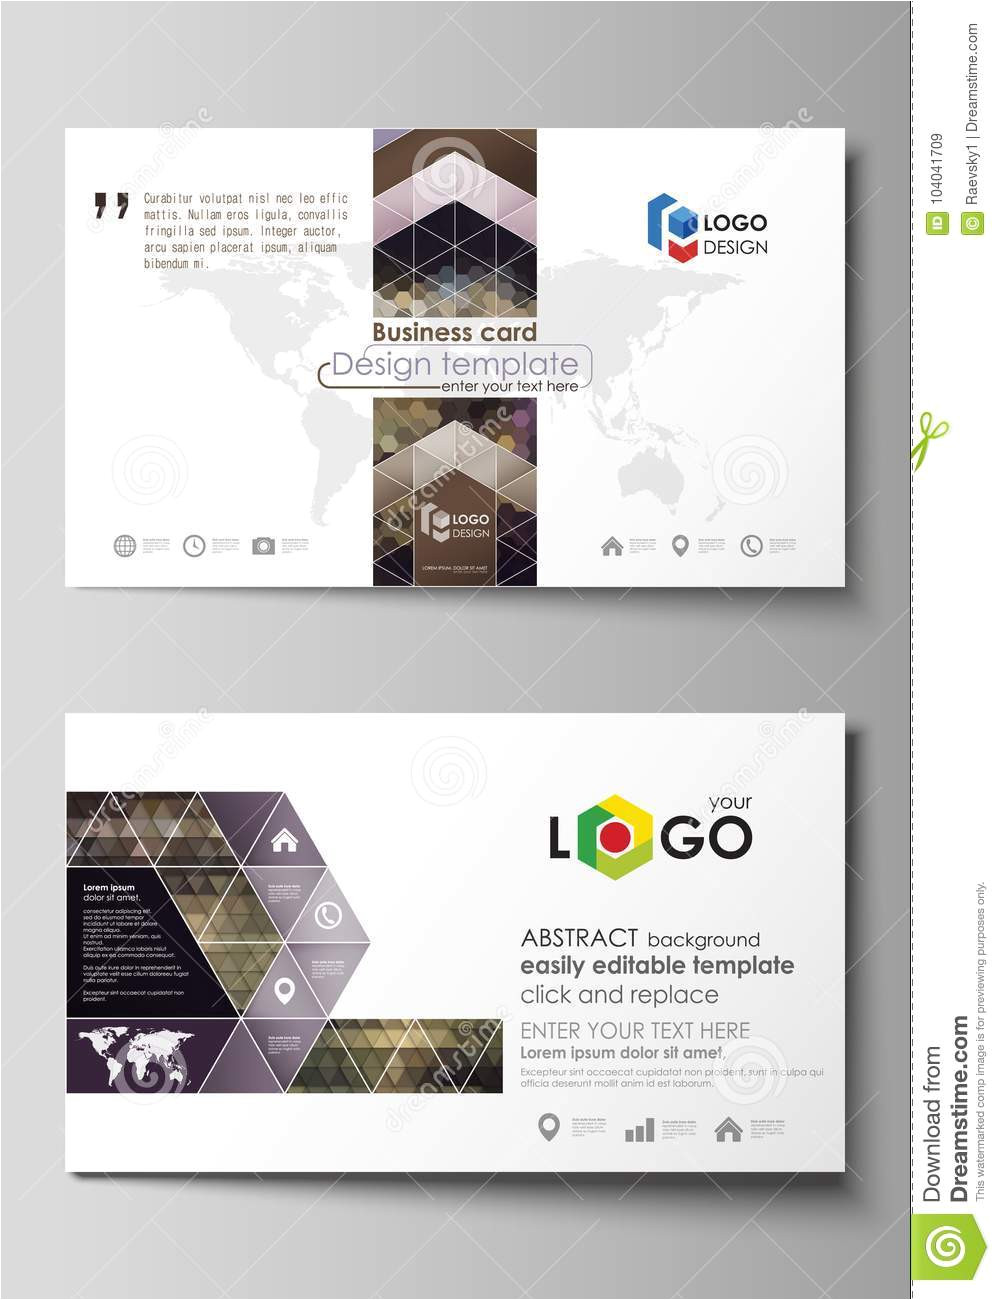 business card templates easy editable layout abstract vector design template multicolored backgrounds geometrical patterns 104041709 jpg